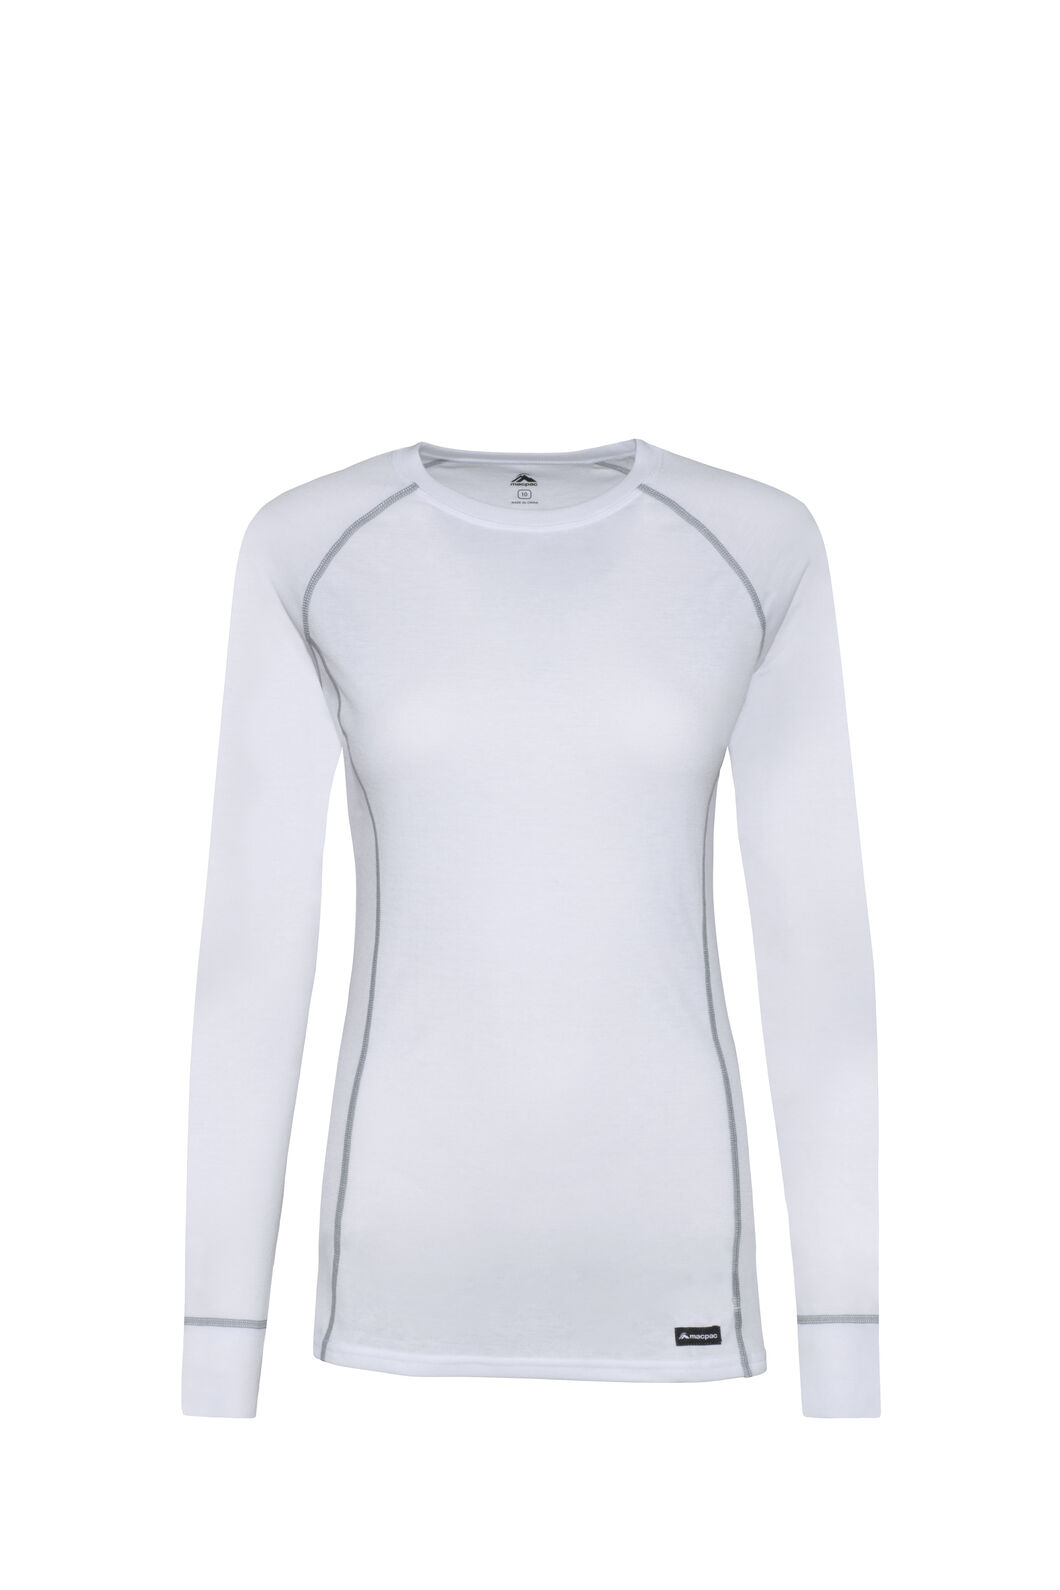 Macpac Geothermal Long Sleeve Top — Women's, White/White, hi-res